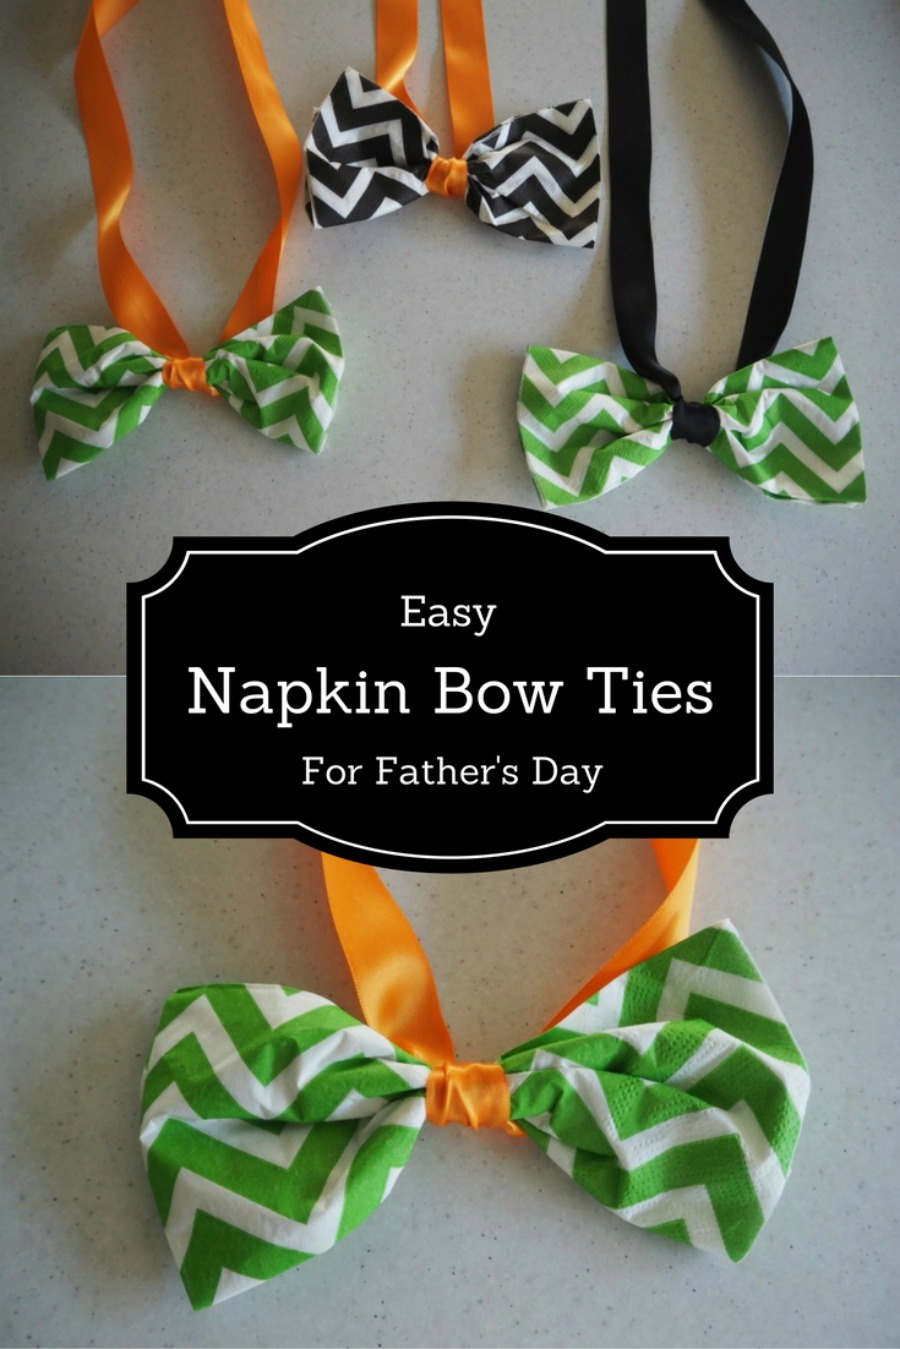 Napkin bow ties father's day